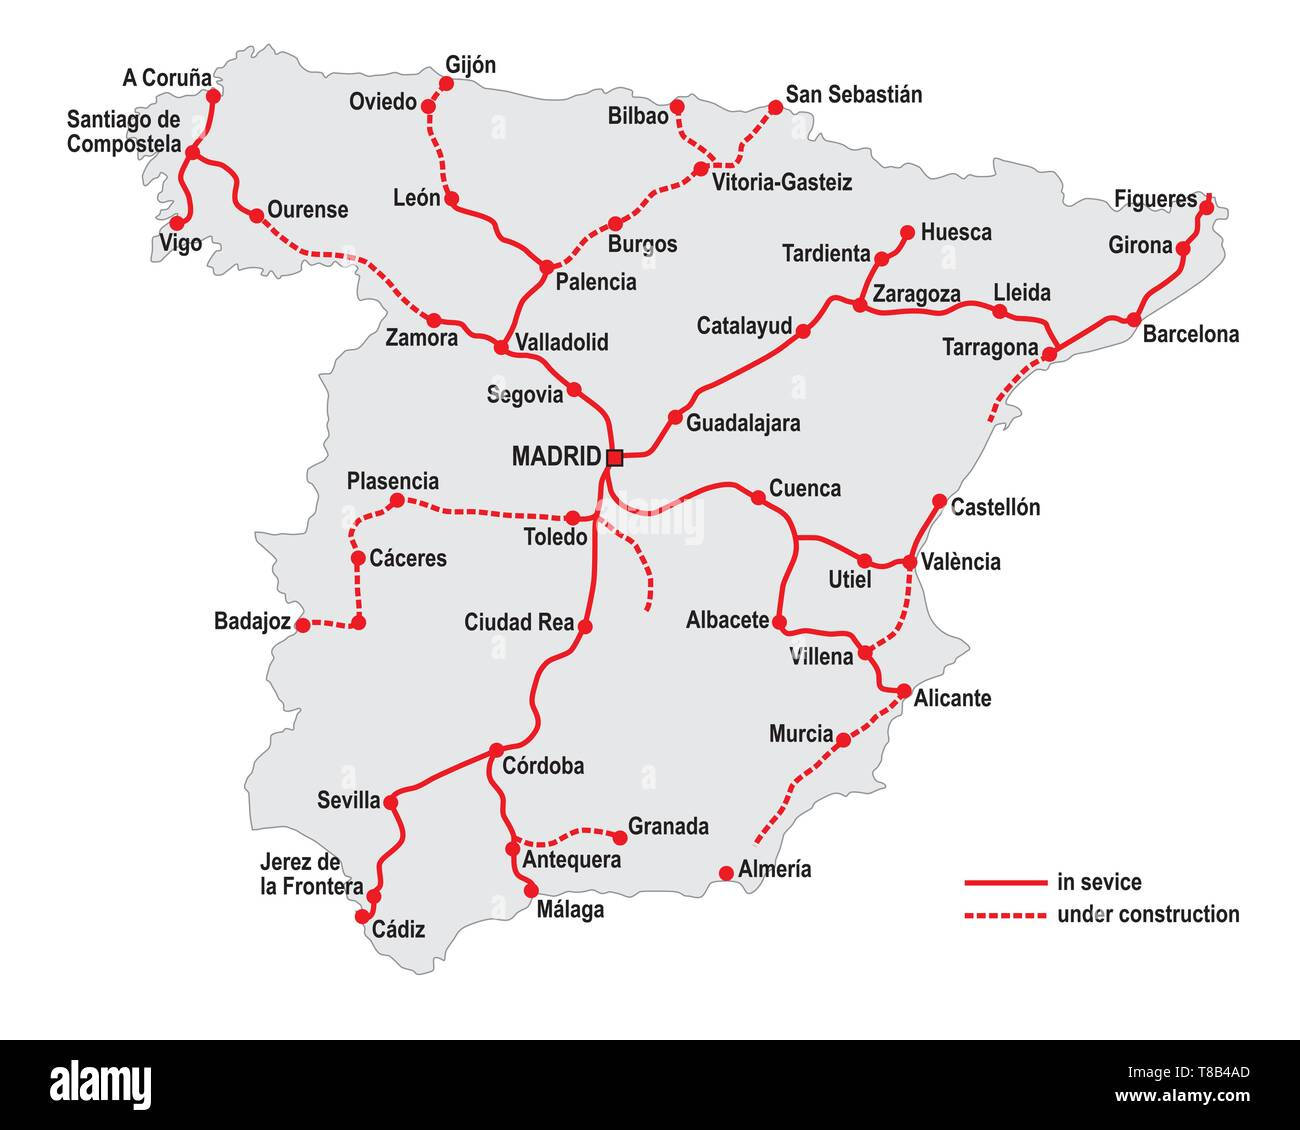 Map of the high speed railway lines in spain - Stock Image